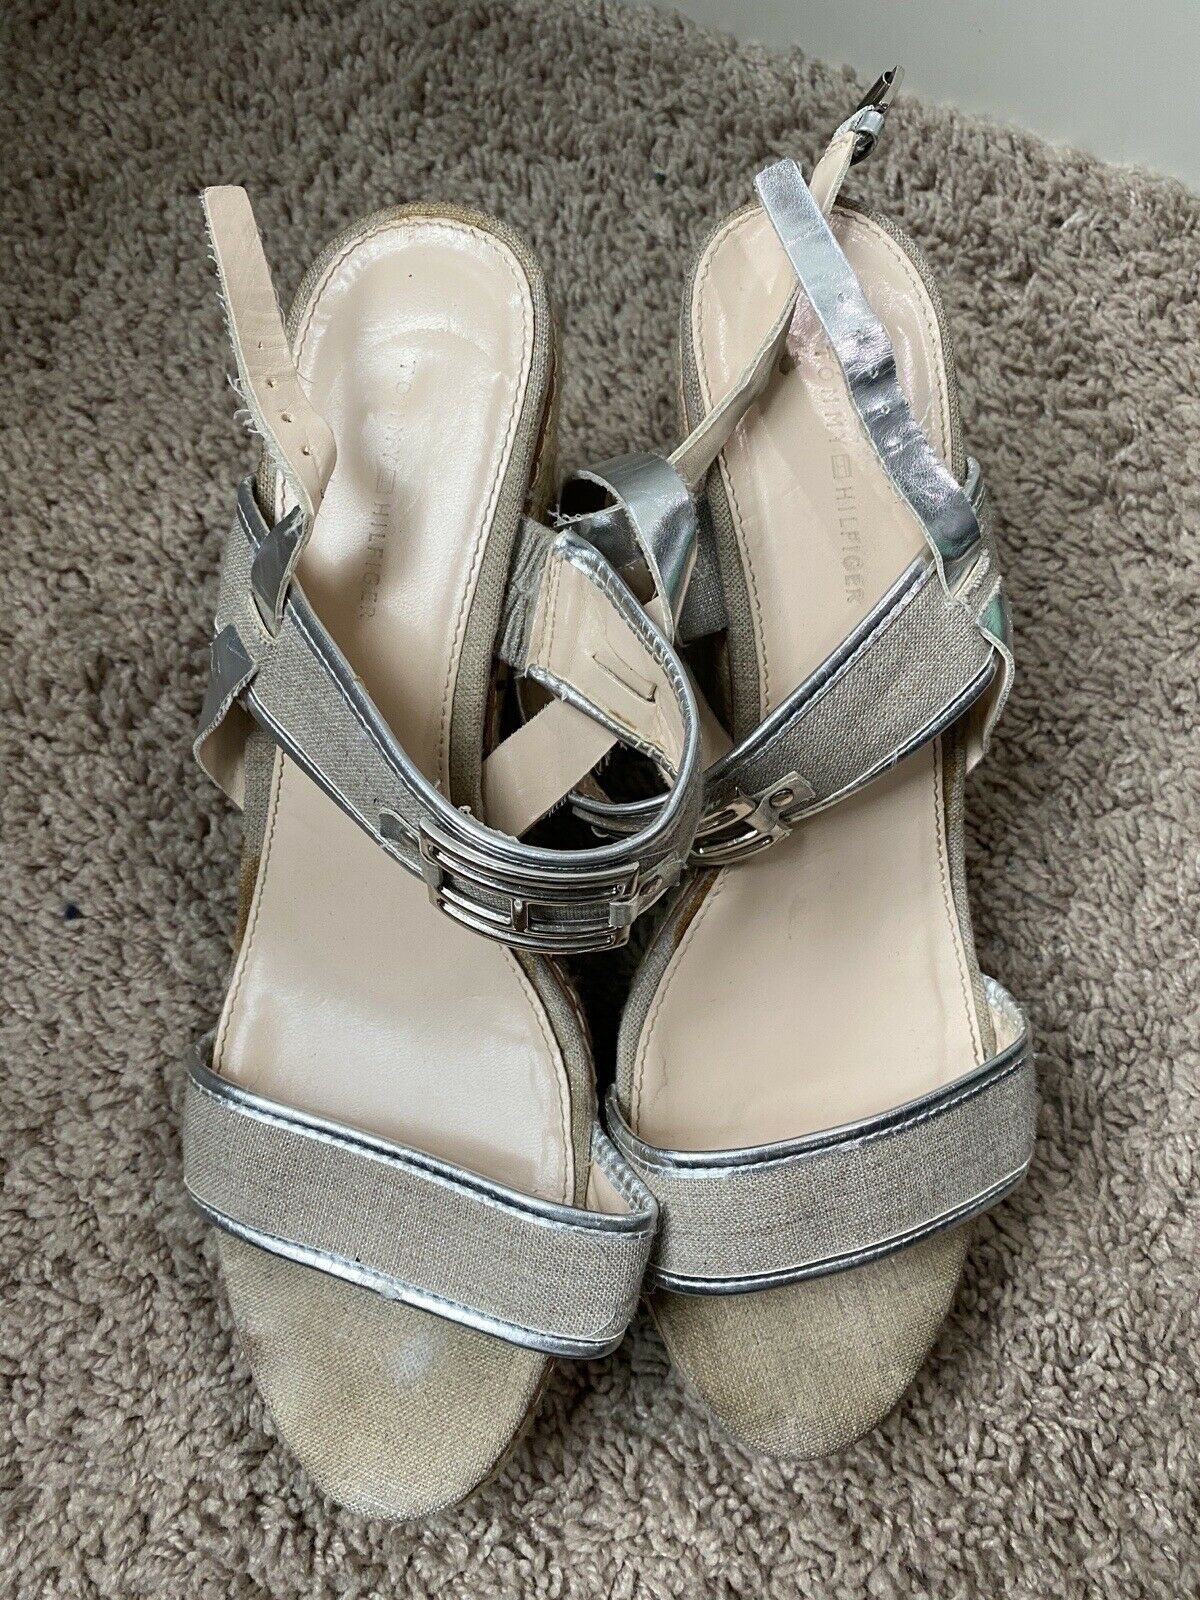 Womens Tommy hilfiger wedges size 10 - image 3